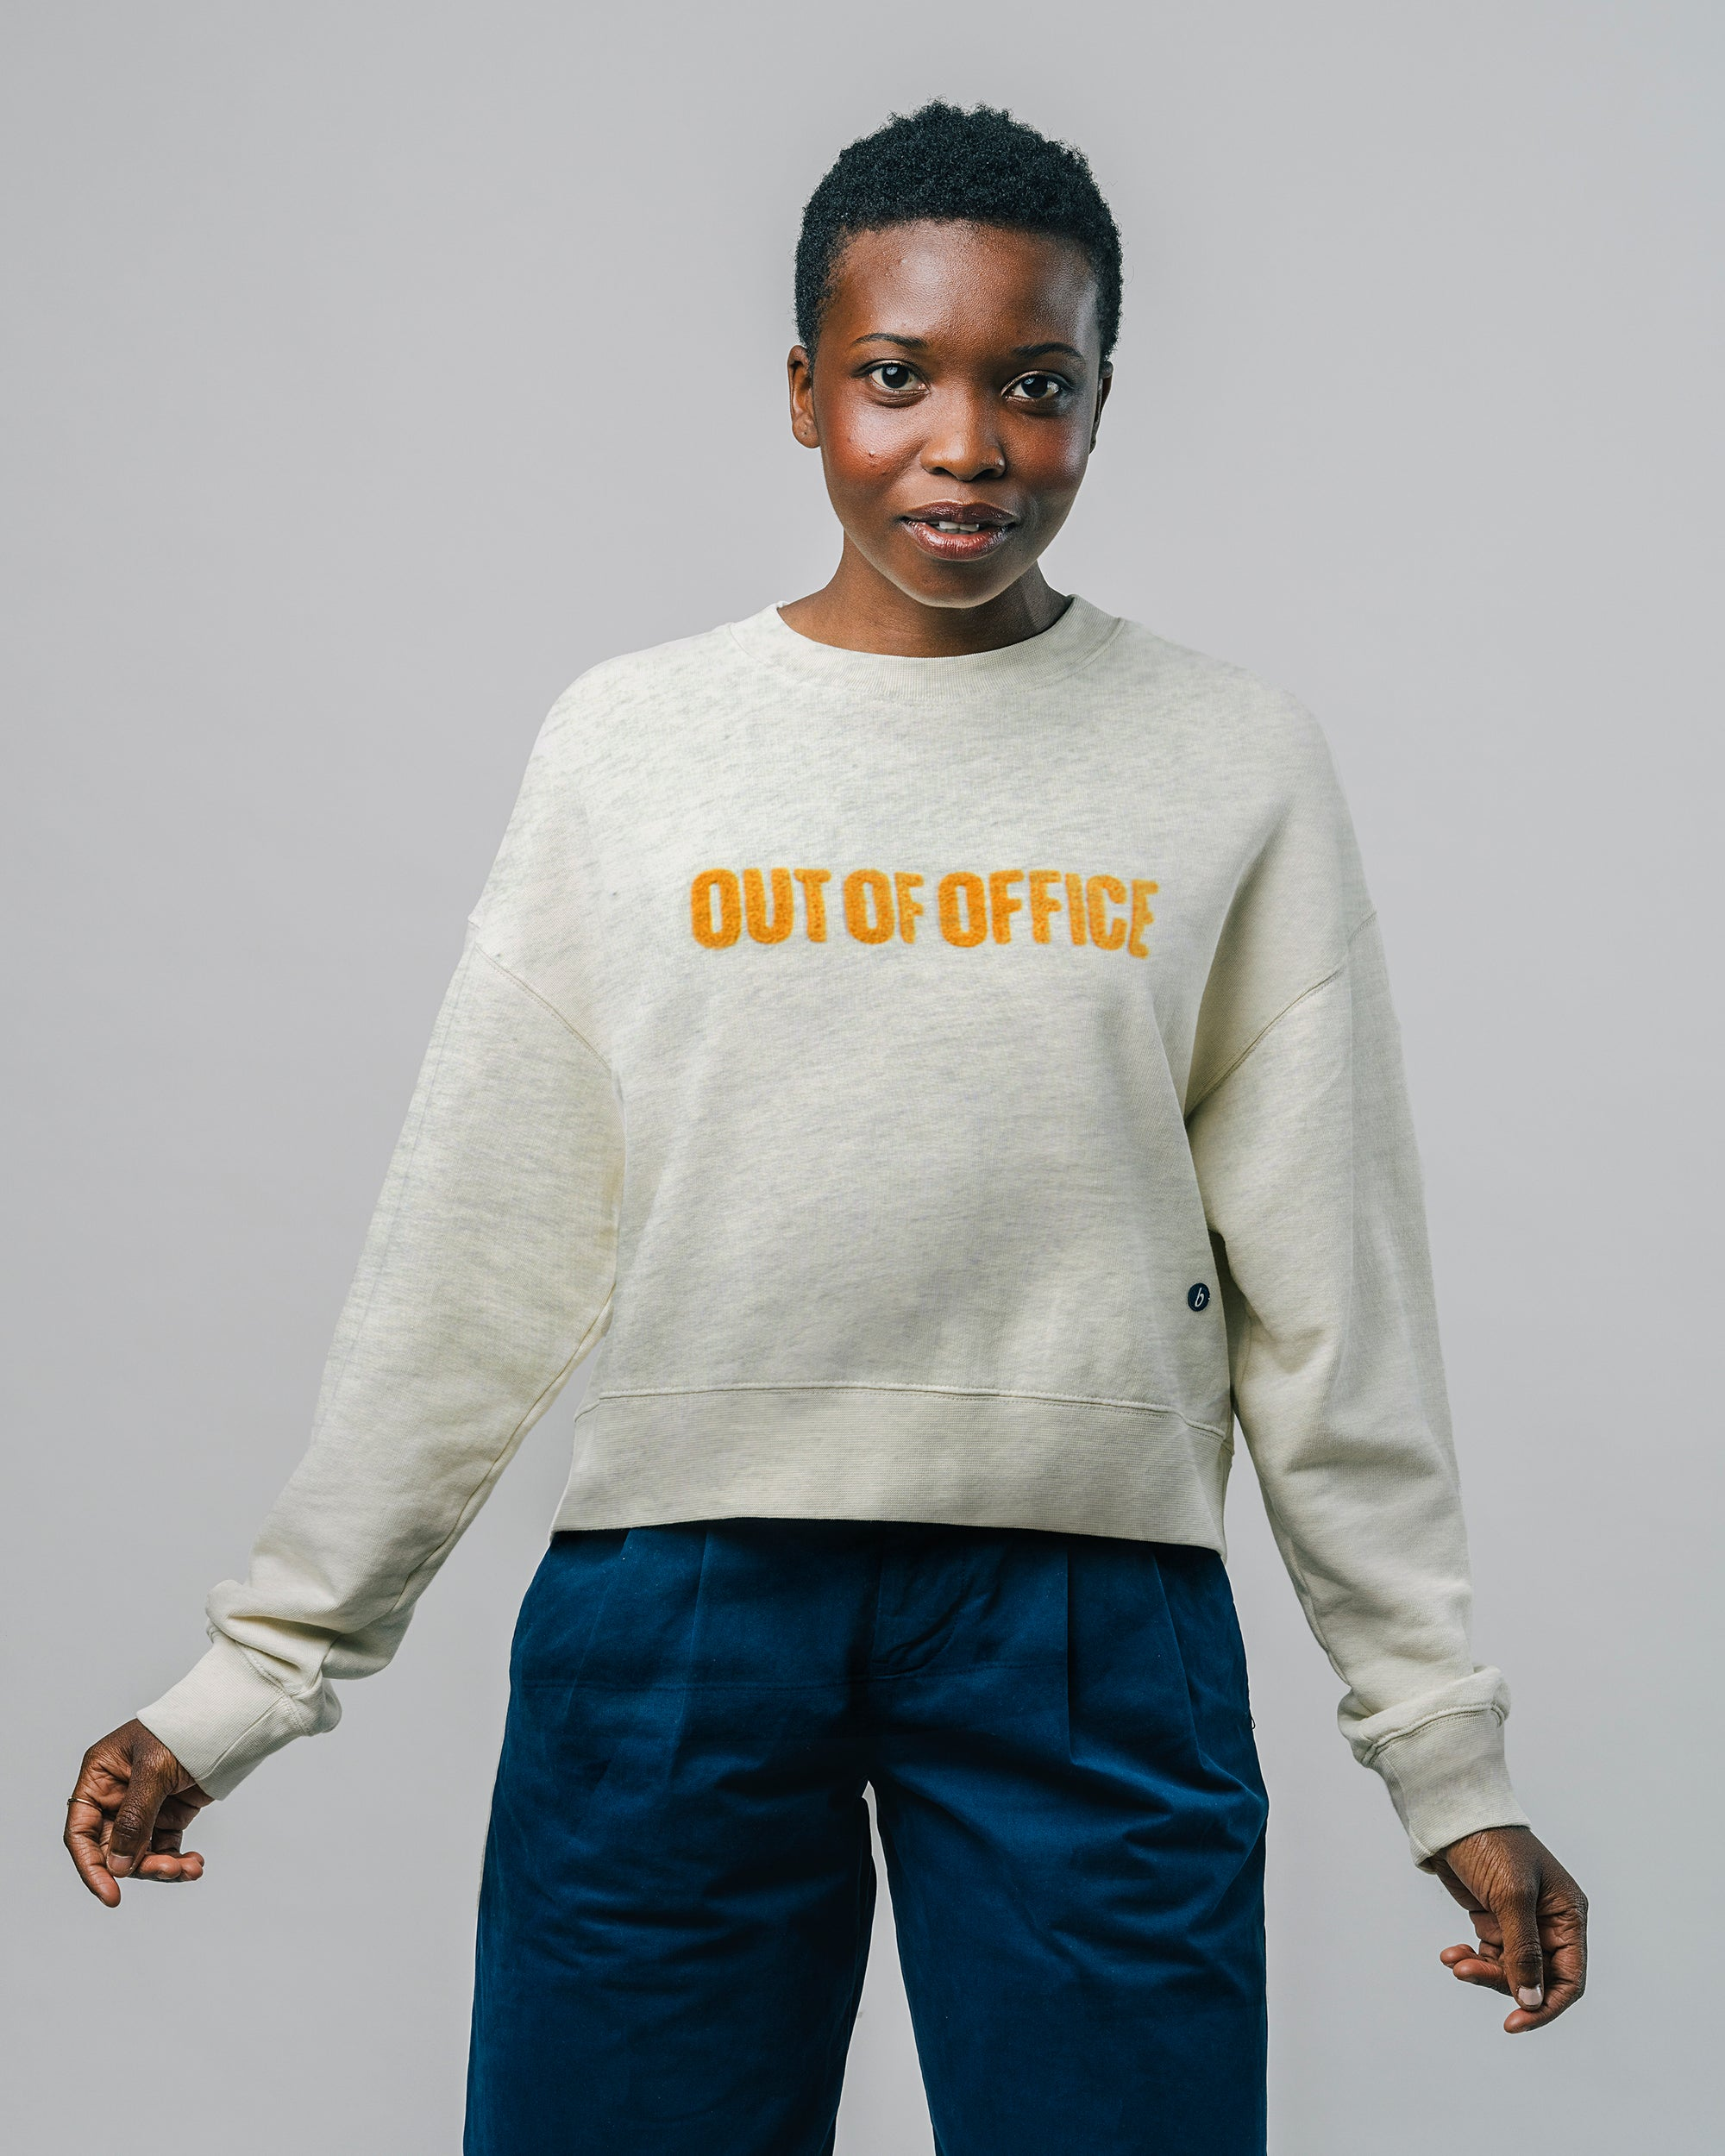 Shop sustainable and fairtrade apparel online. Model Sweatshirt Out of Office. Official Brava Fabrics store, worldwide express shipping.